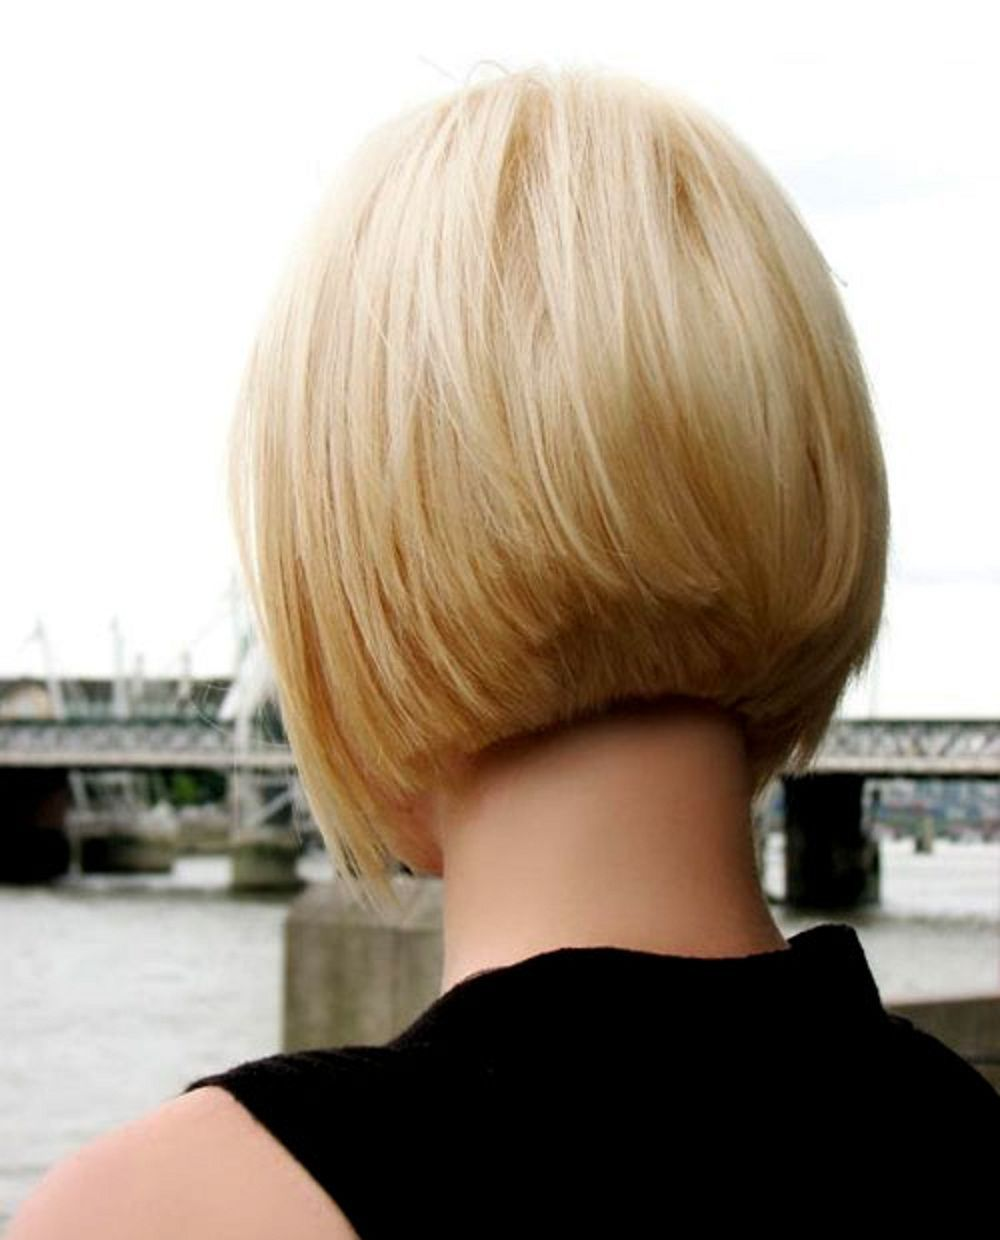 I like the clean lines of the back doces pinterest bobs hair